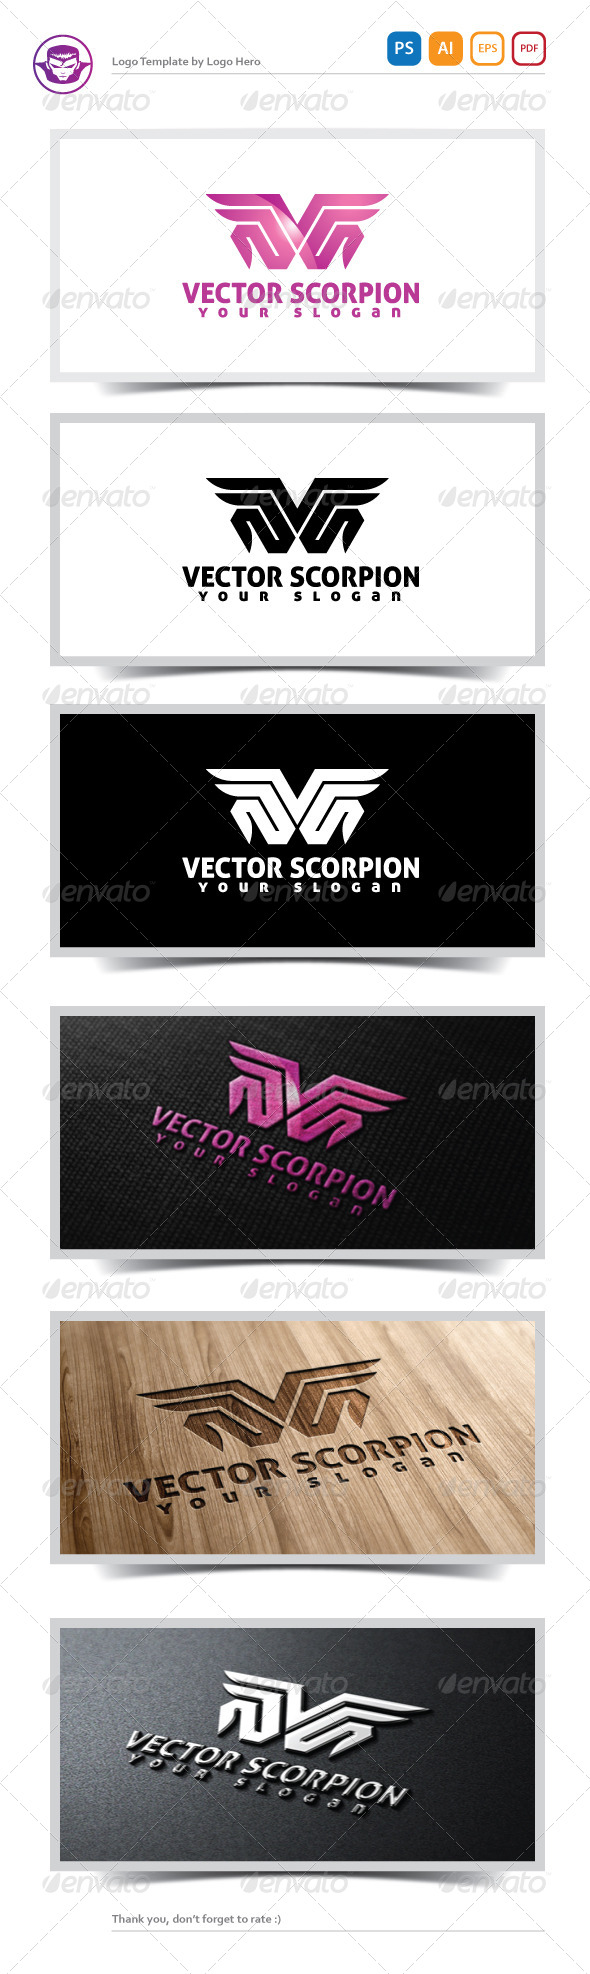 GraphicRiver Vector Scorpion Logo Template 5166916